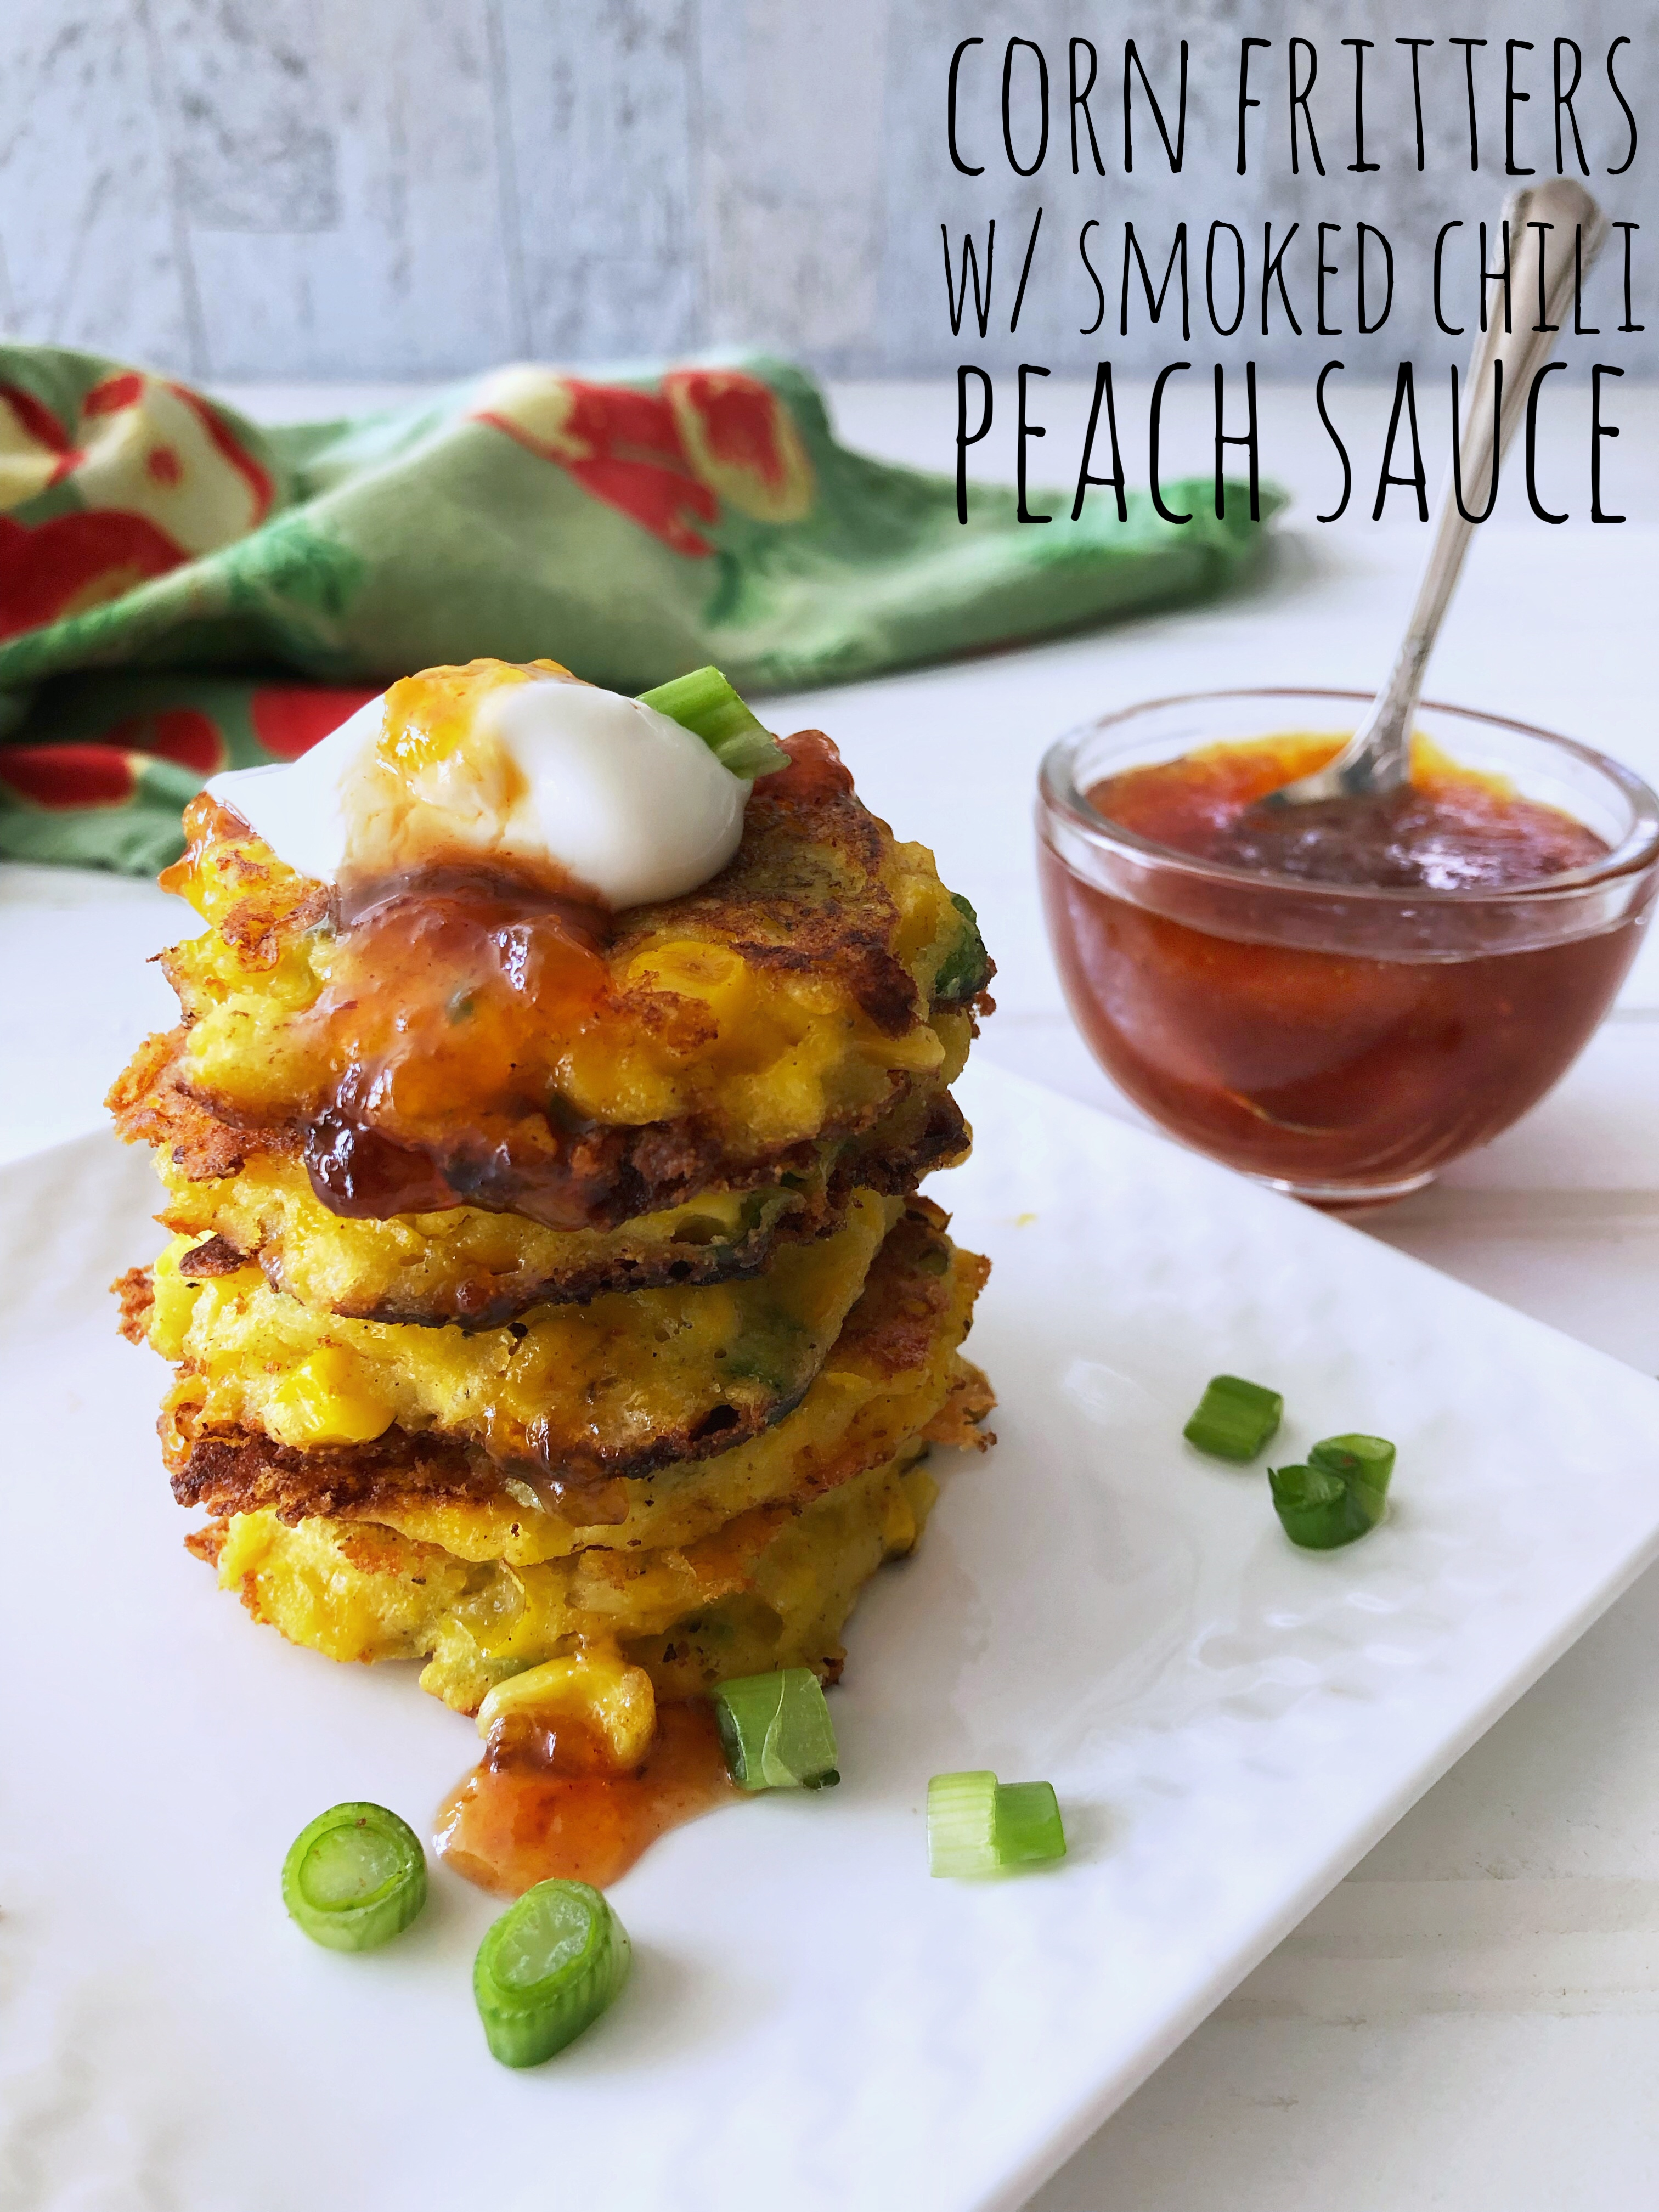 stack of corn fritters with smoked chili peach sauce